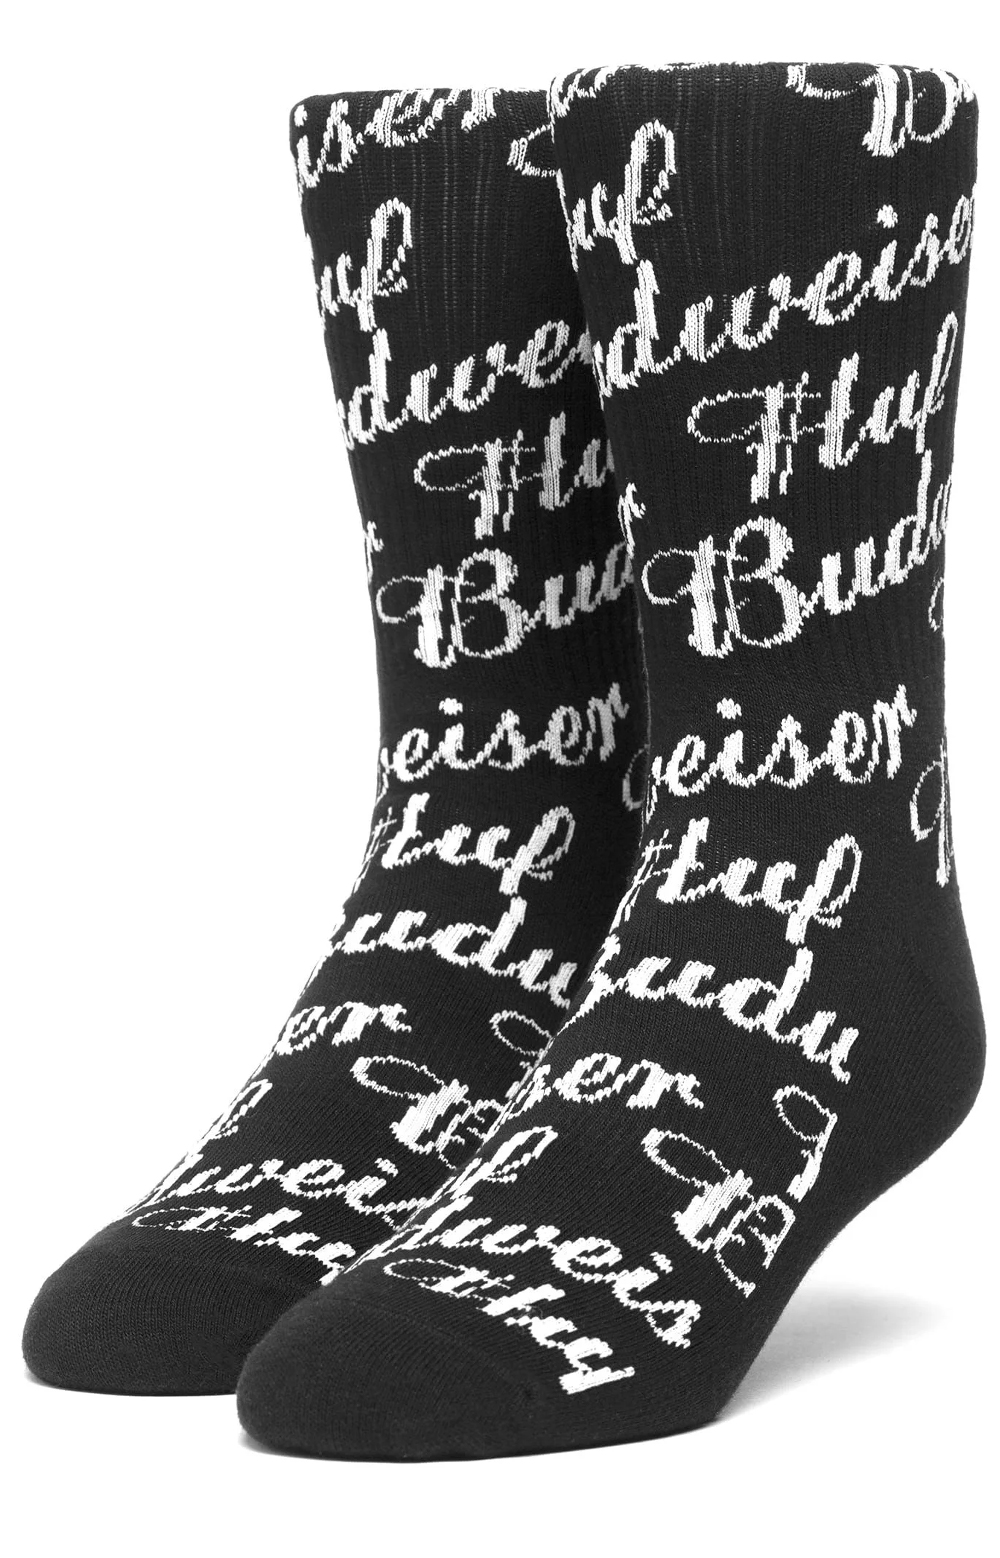 Budweiser Crew Sock - Black